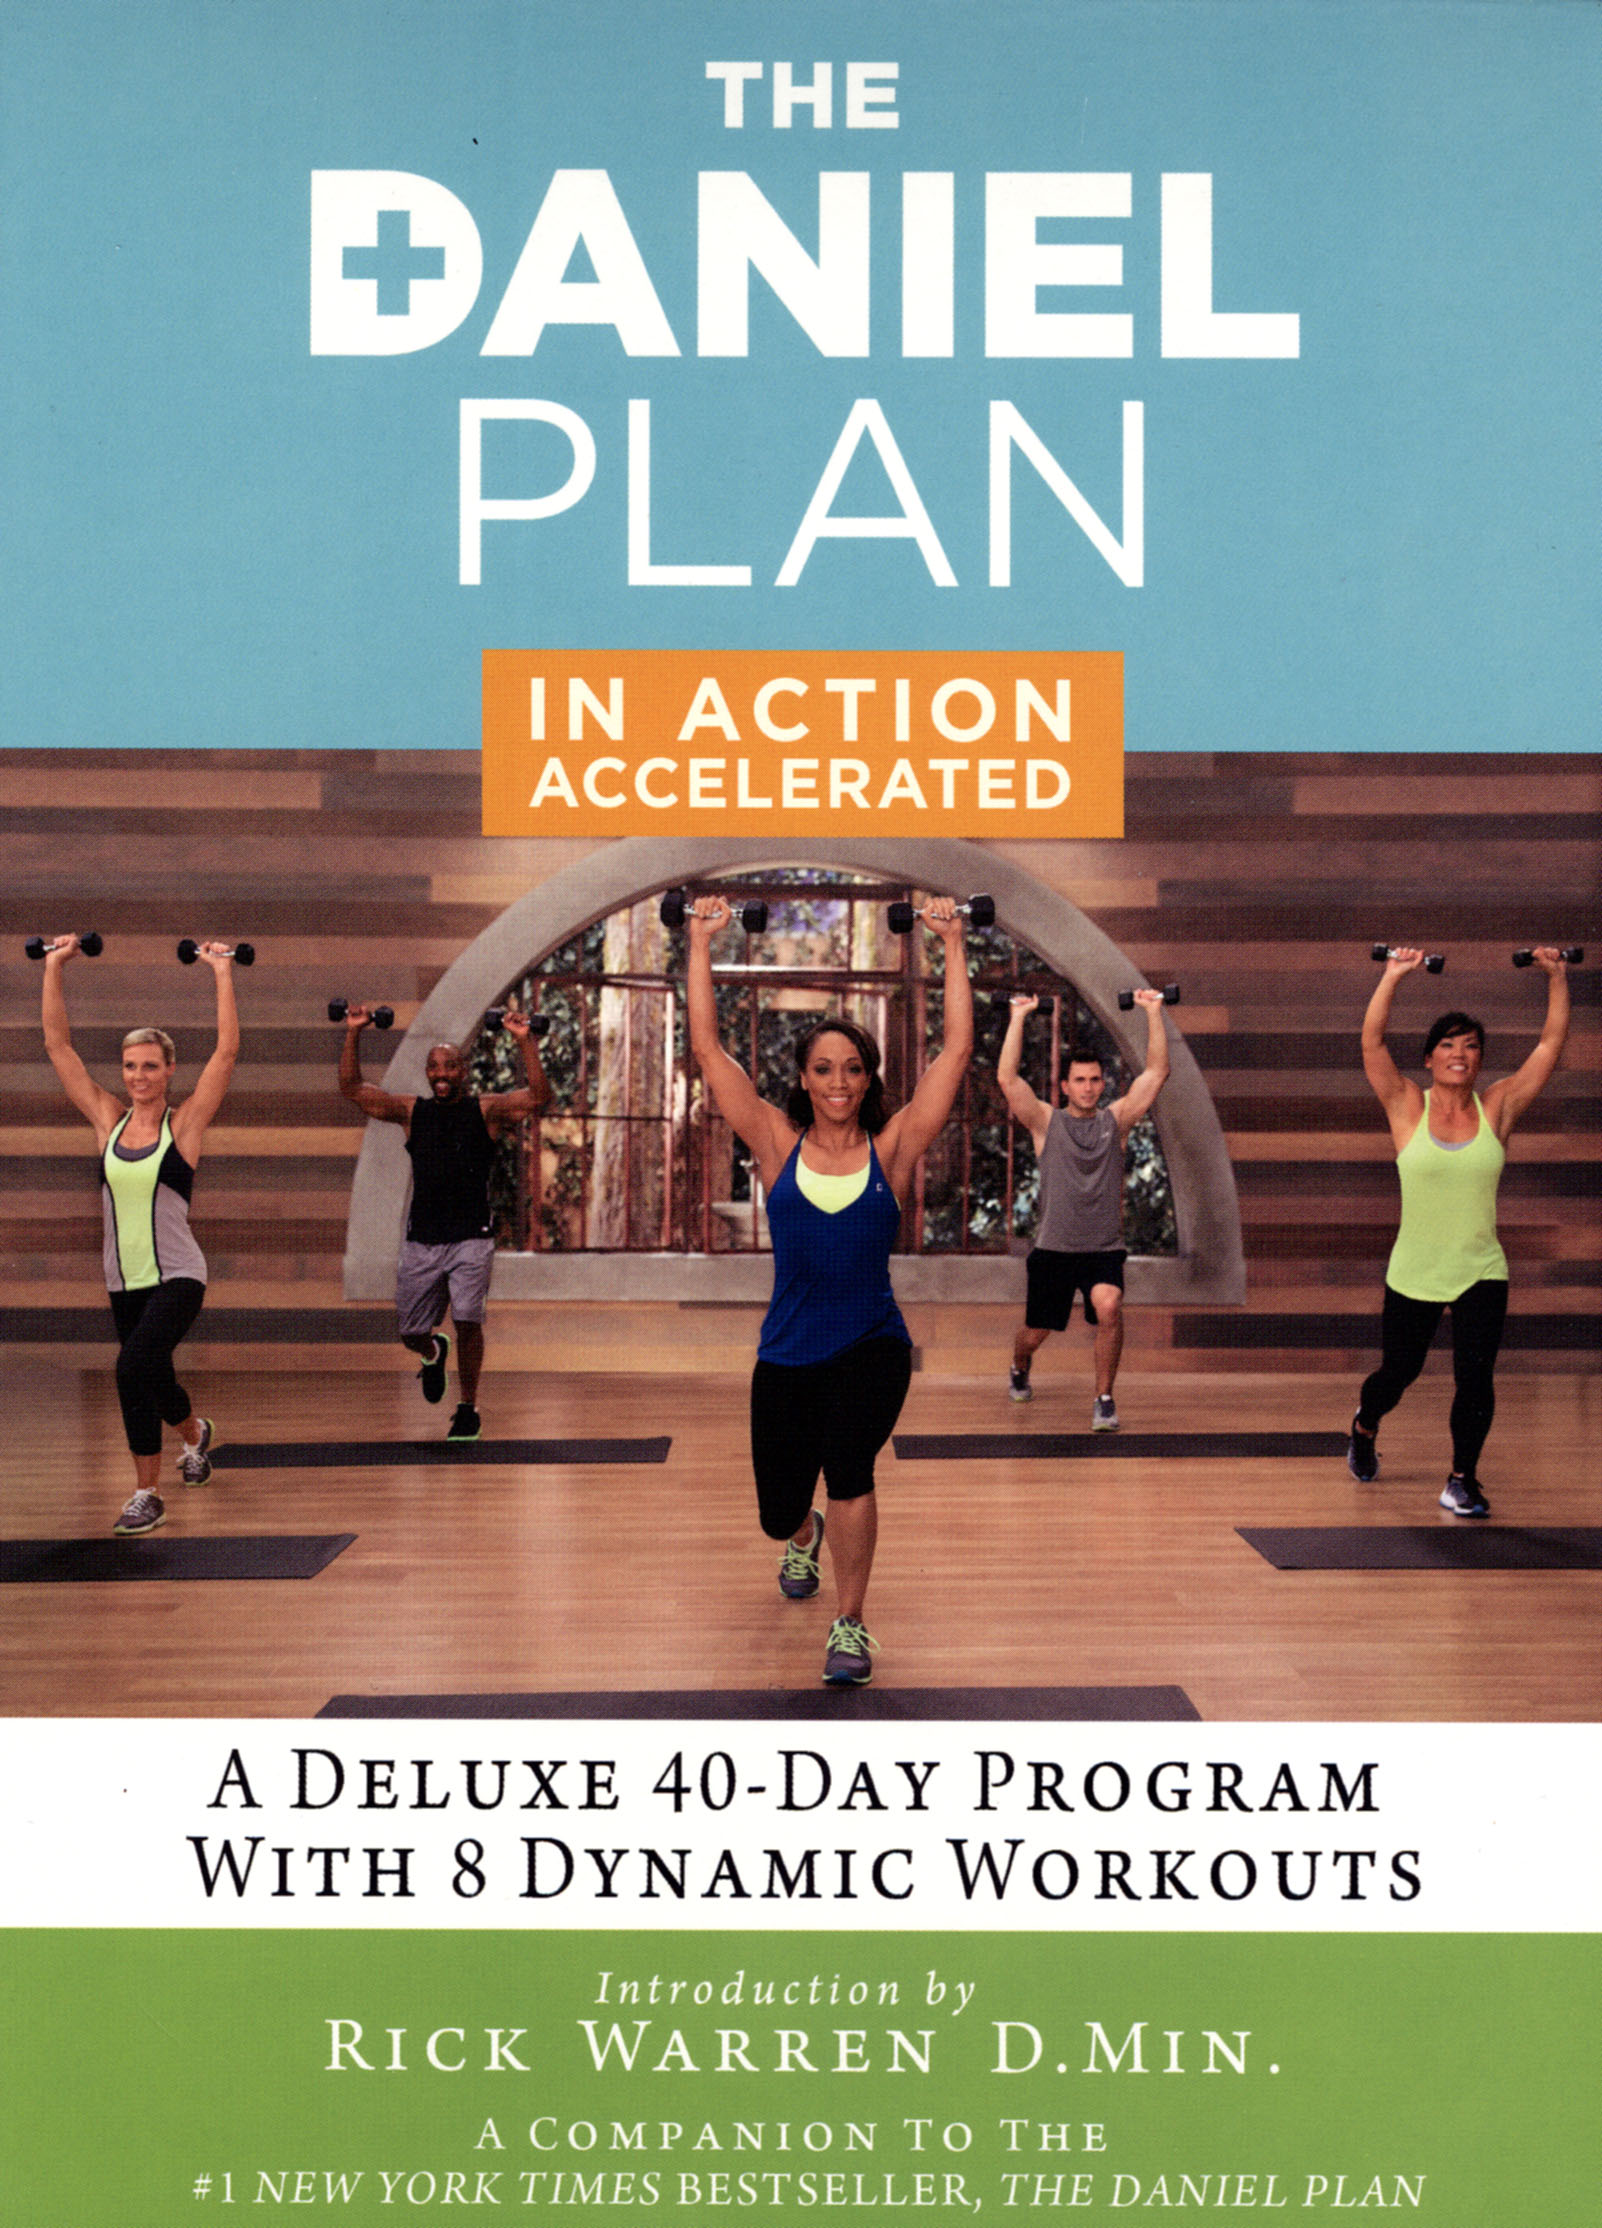 The Daniel Plan: In Action Accelerated